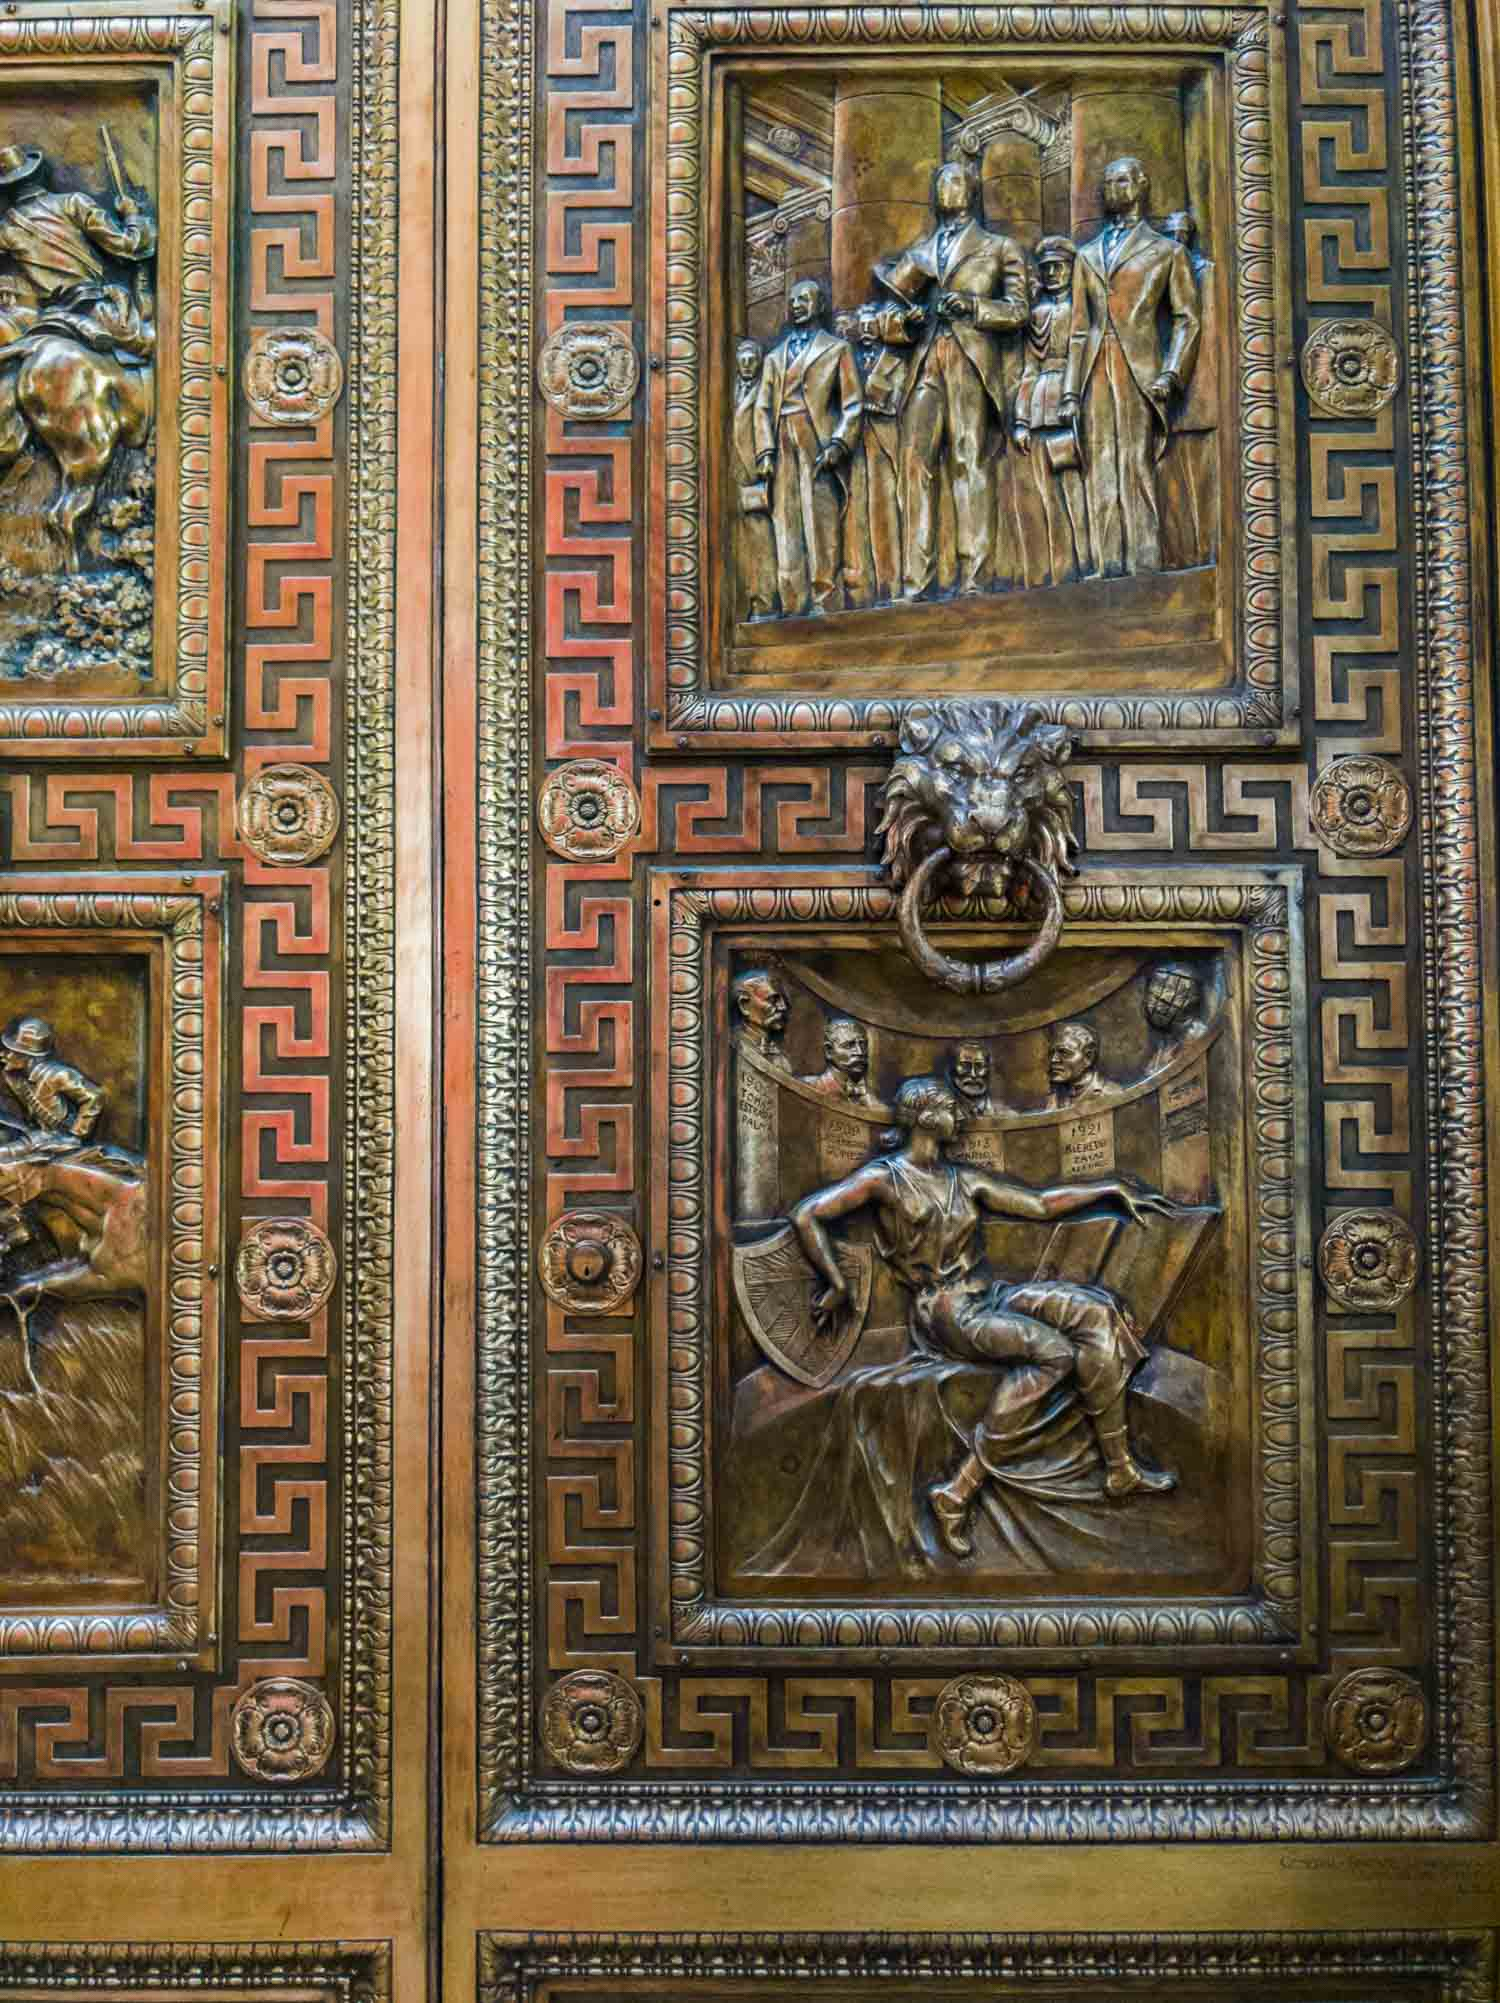 Bronze doors at El Capitolio, the capitol building in Havana Cuba